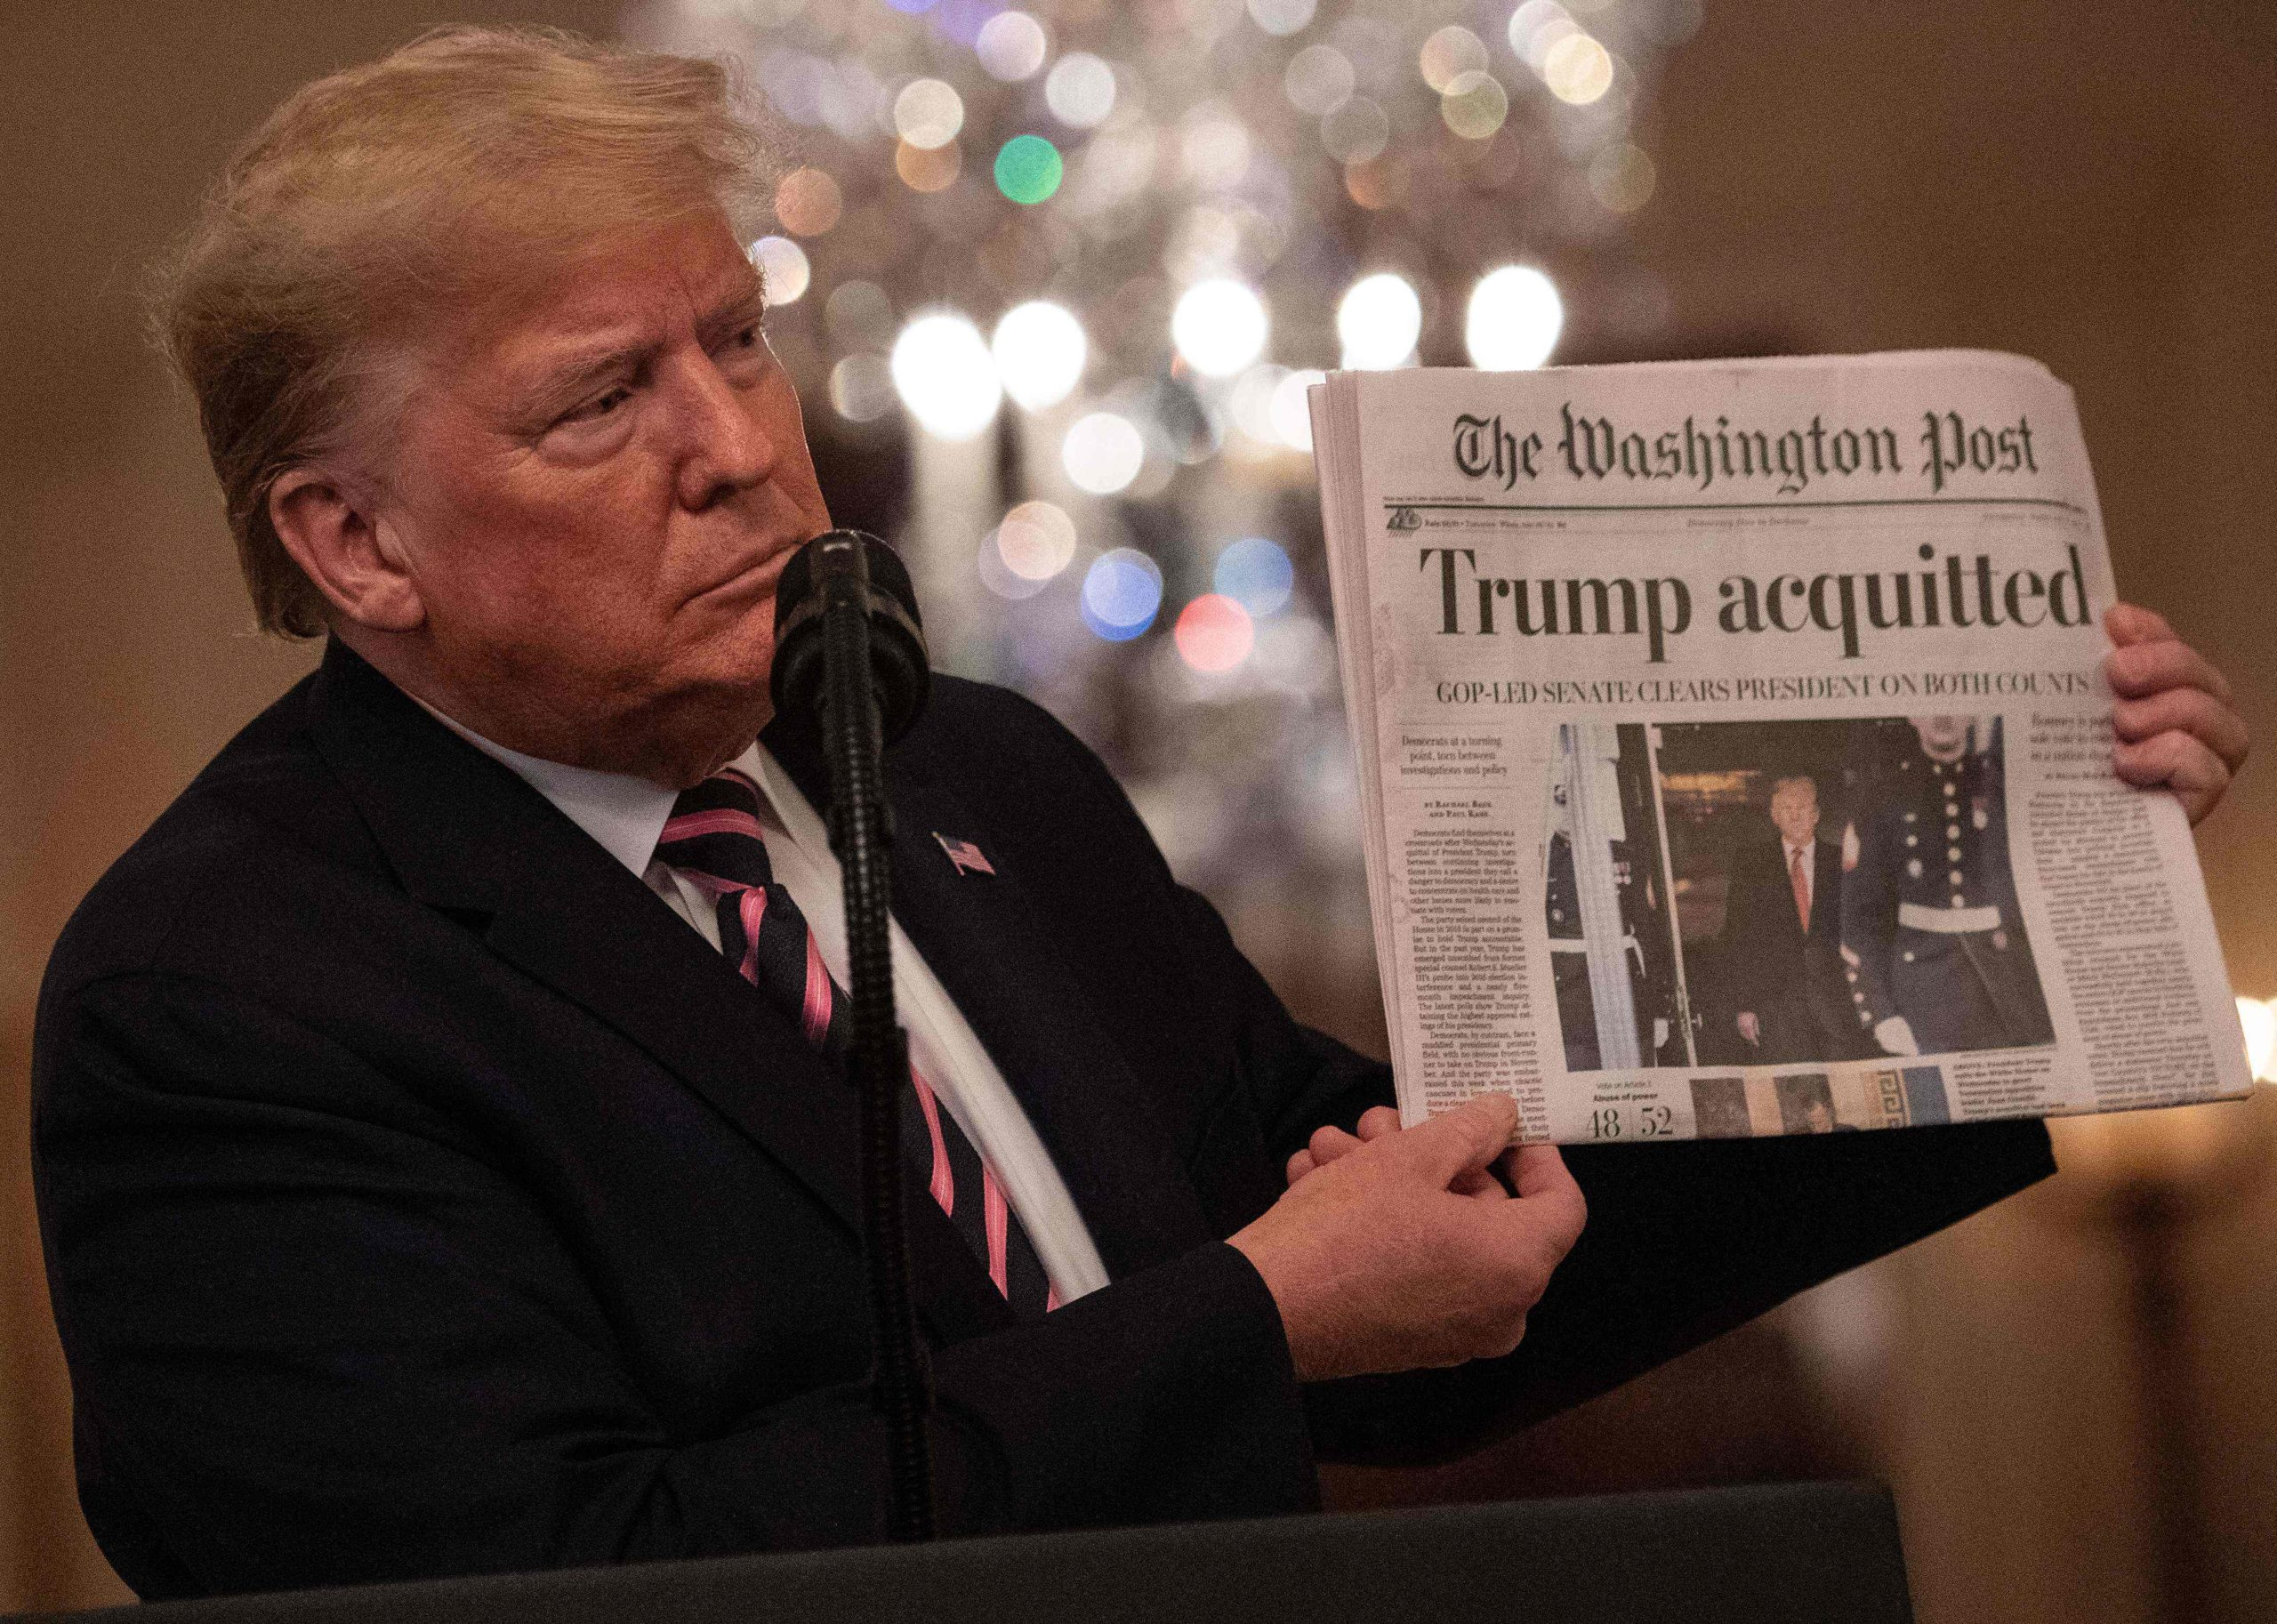 US President Donald Trump holding up The Washington Post that headlines 'Trump acquitted'